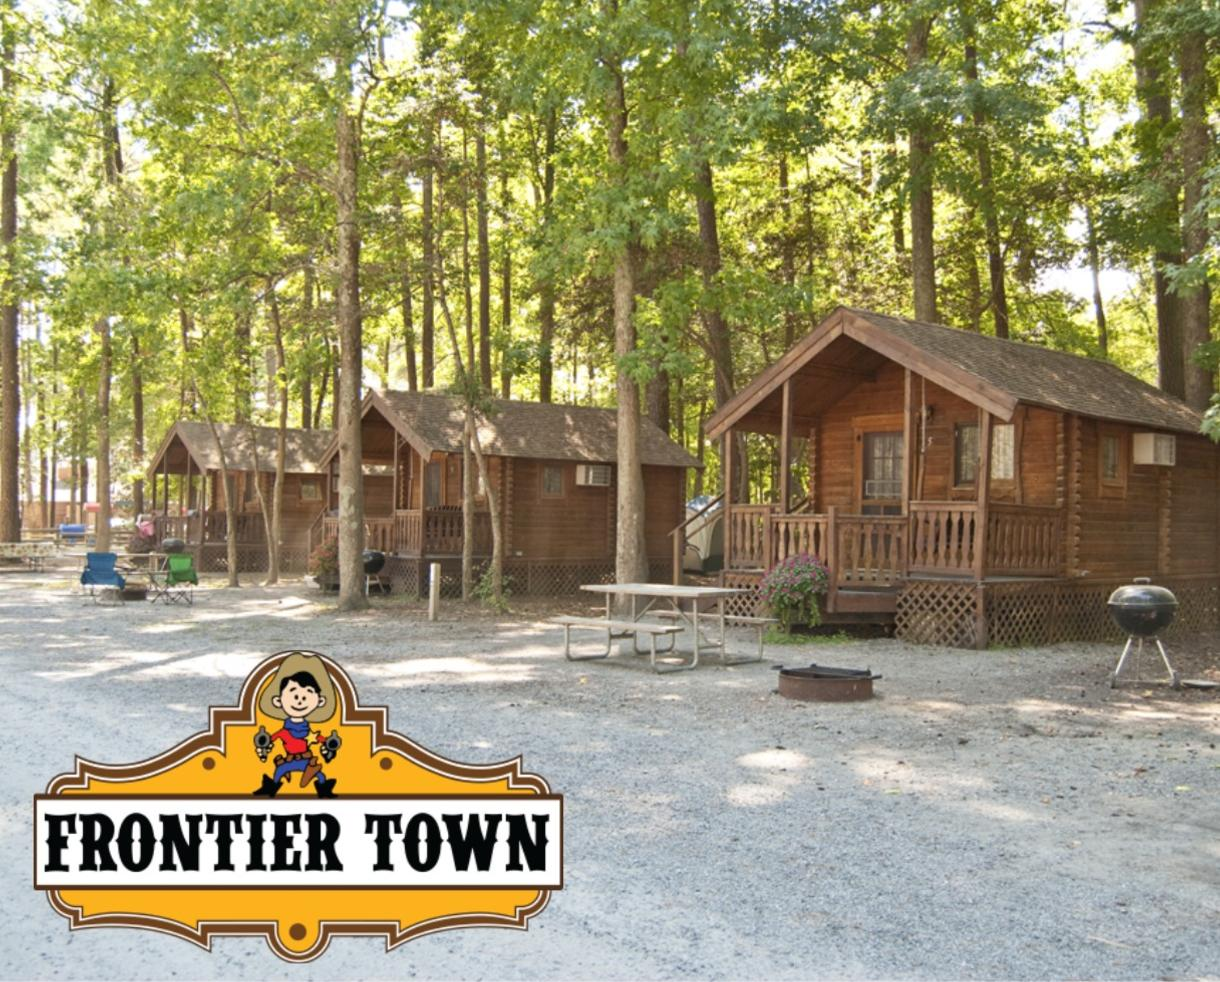 $67+ for 2-Night Cabin Getaway at Frontier Town Near Ocean City, MD (Up to 50% Off)